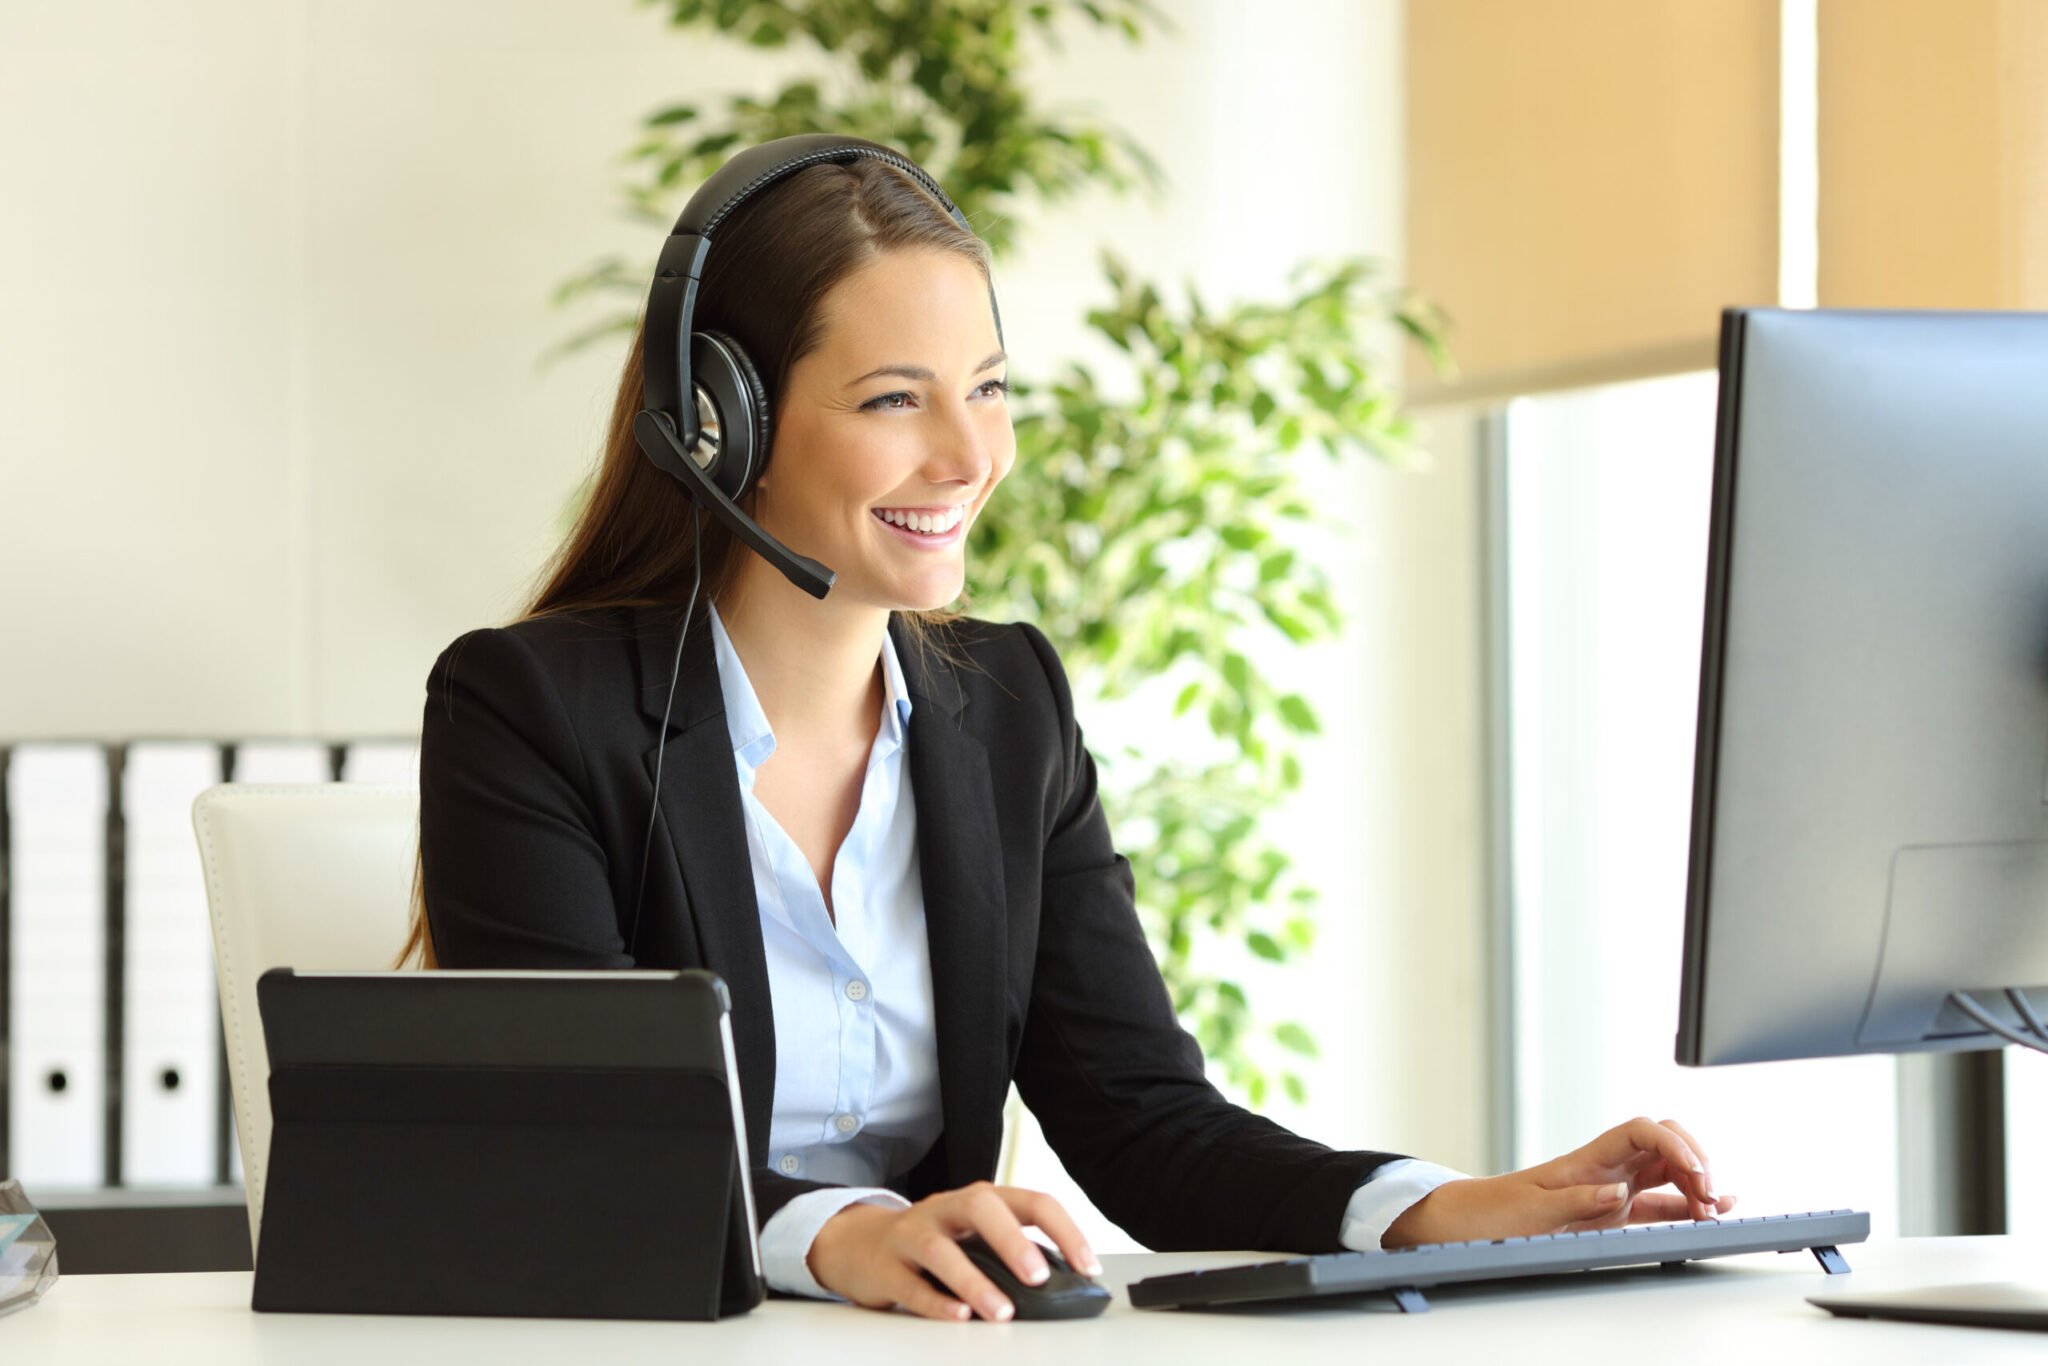 24/7 Guest Support- Helpful guest services team member